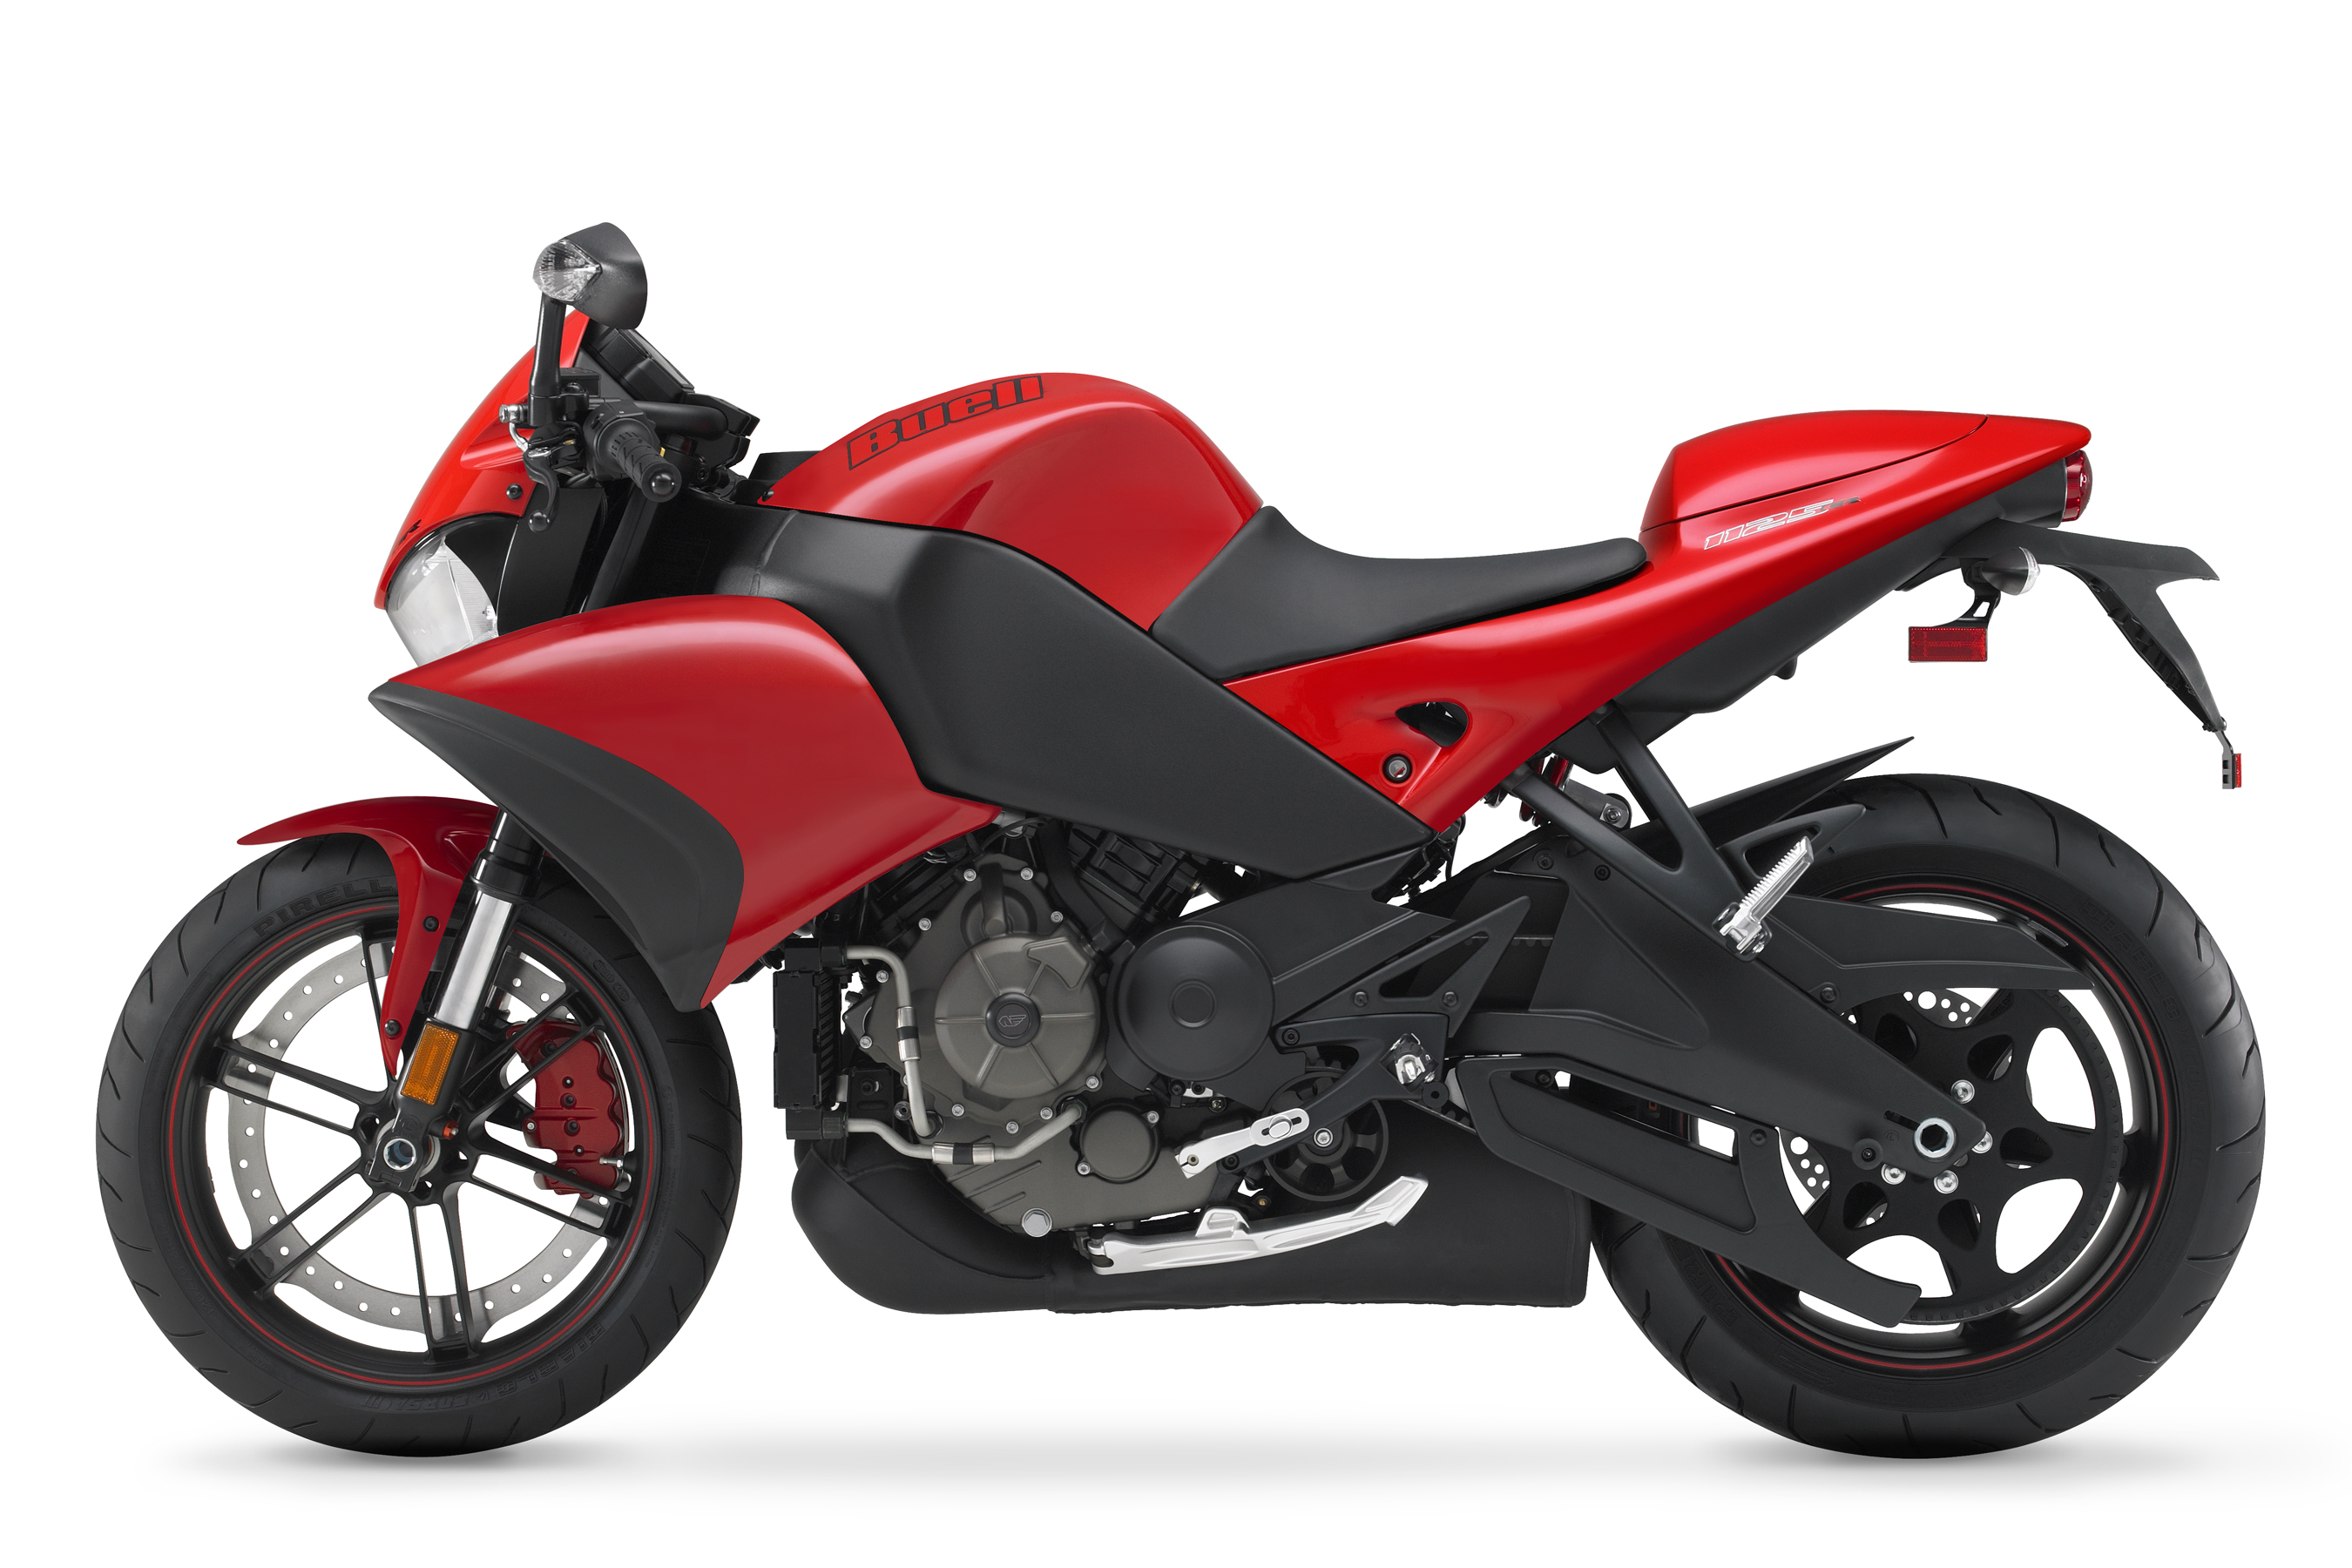 2009 Buell 1125CR | Top Speed